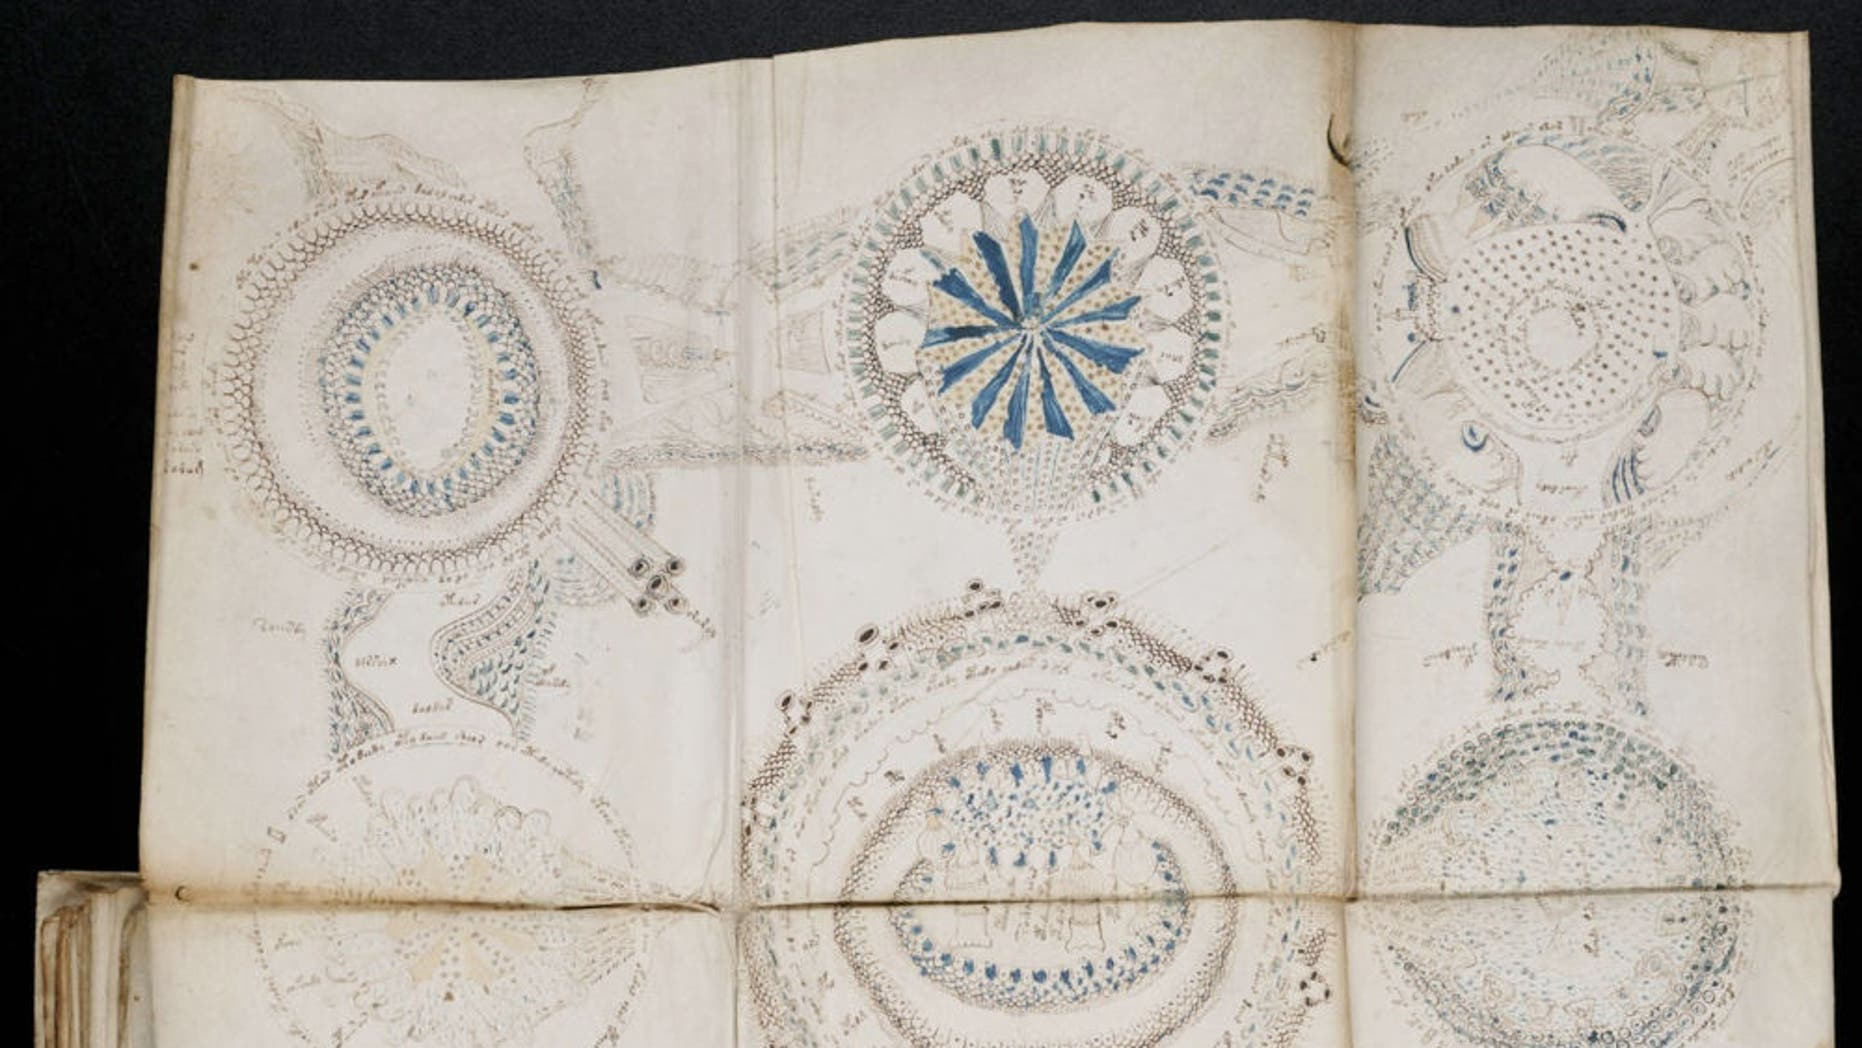 The Voynich manuscript's unintelligible writings and strange illustrations have defied every attempt at understanding their meaning. (Credit: Beinecke Rare Book and Manuscript Library, Yale University)